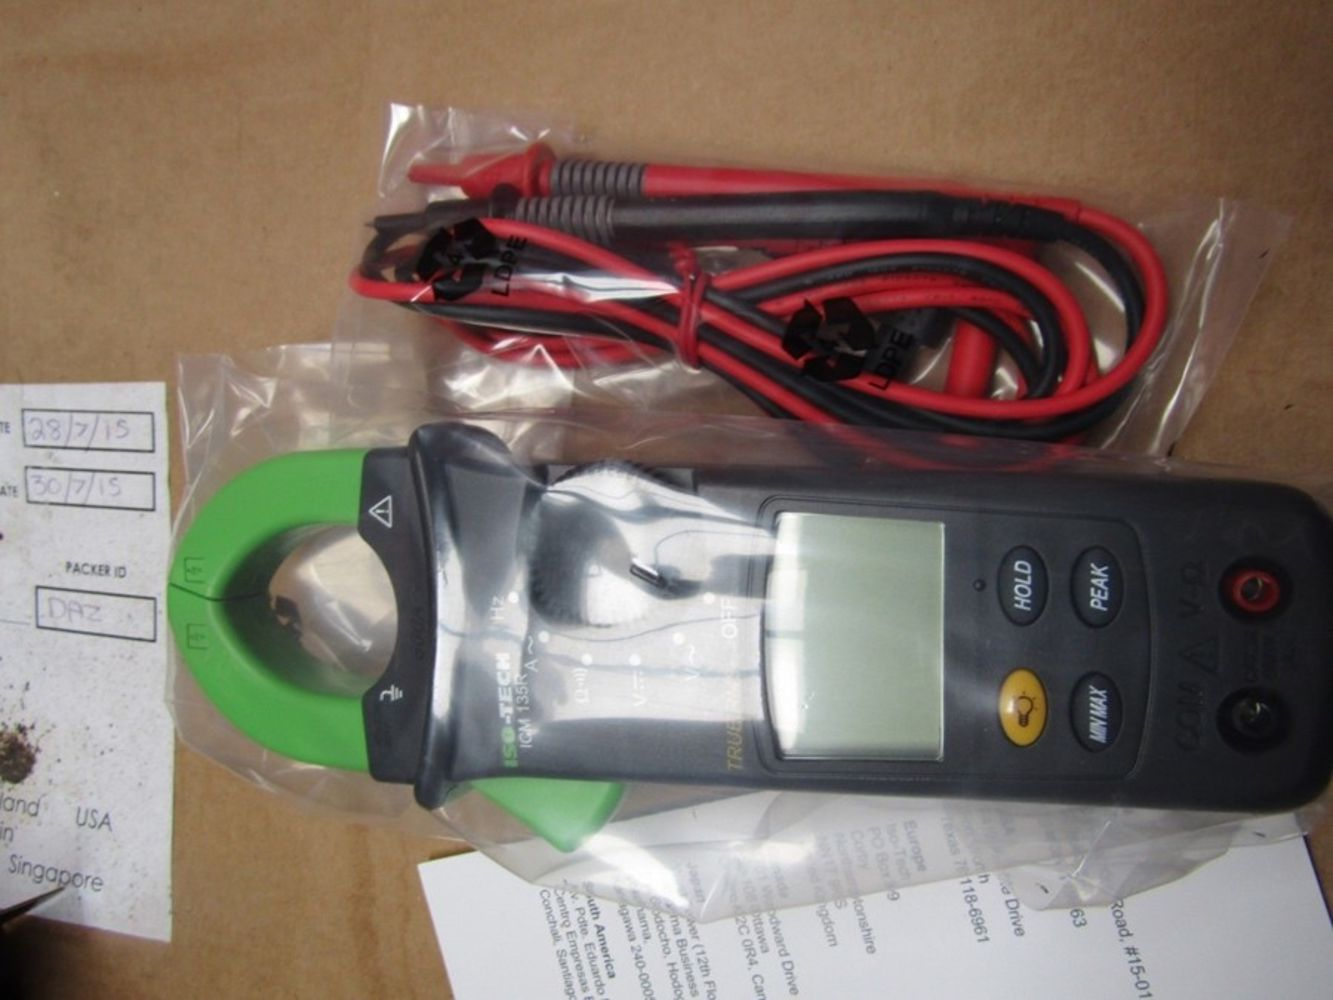 NEW Test & Measurement, Industrial Automation, PowerTools, Tool Kits, Cable, Lighting, DC_DC Converters, Inverters and Bulk Lots for resale